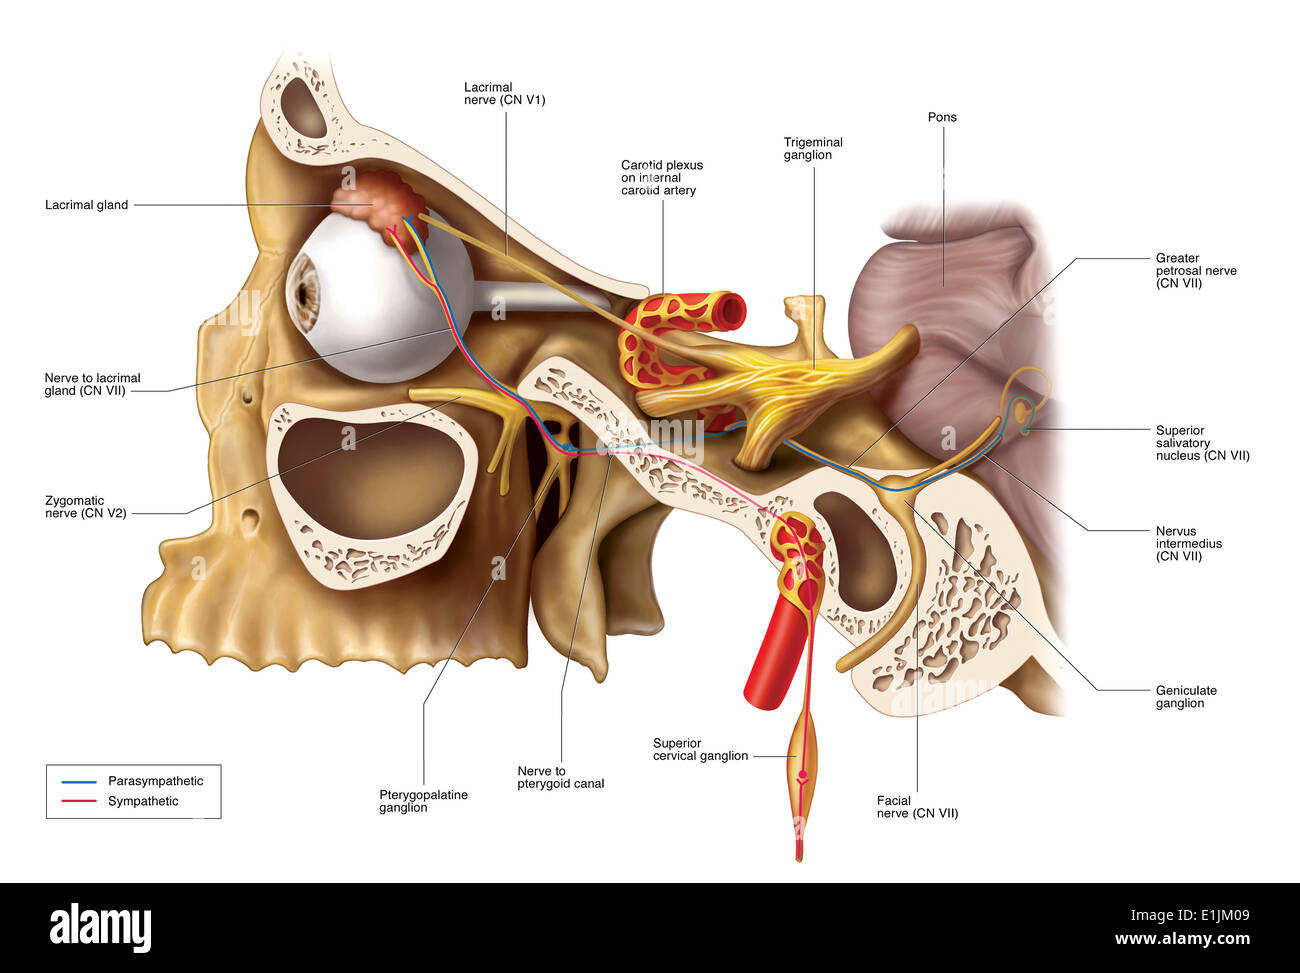 Anatomical Pathways Of Innervation To The Lacrimal Gland Stock ...